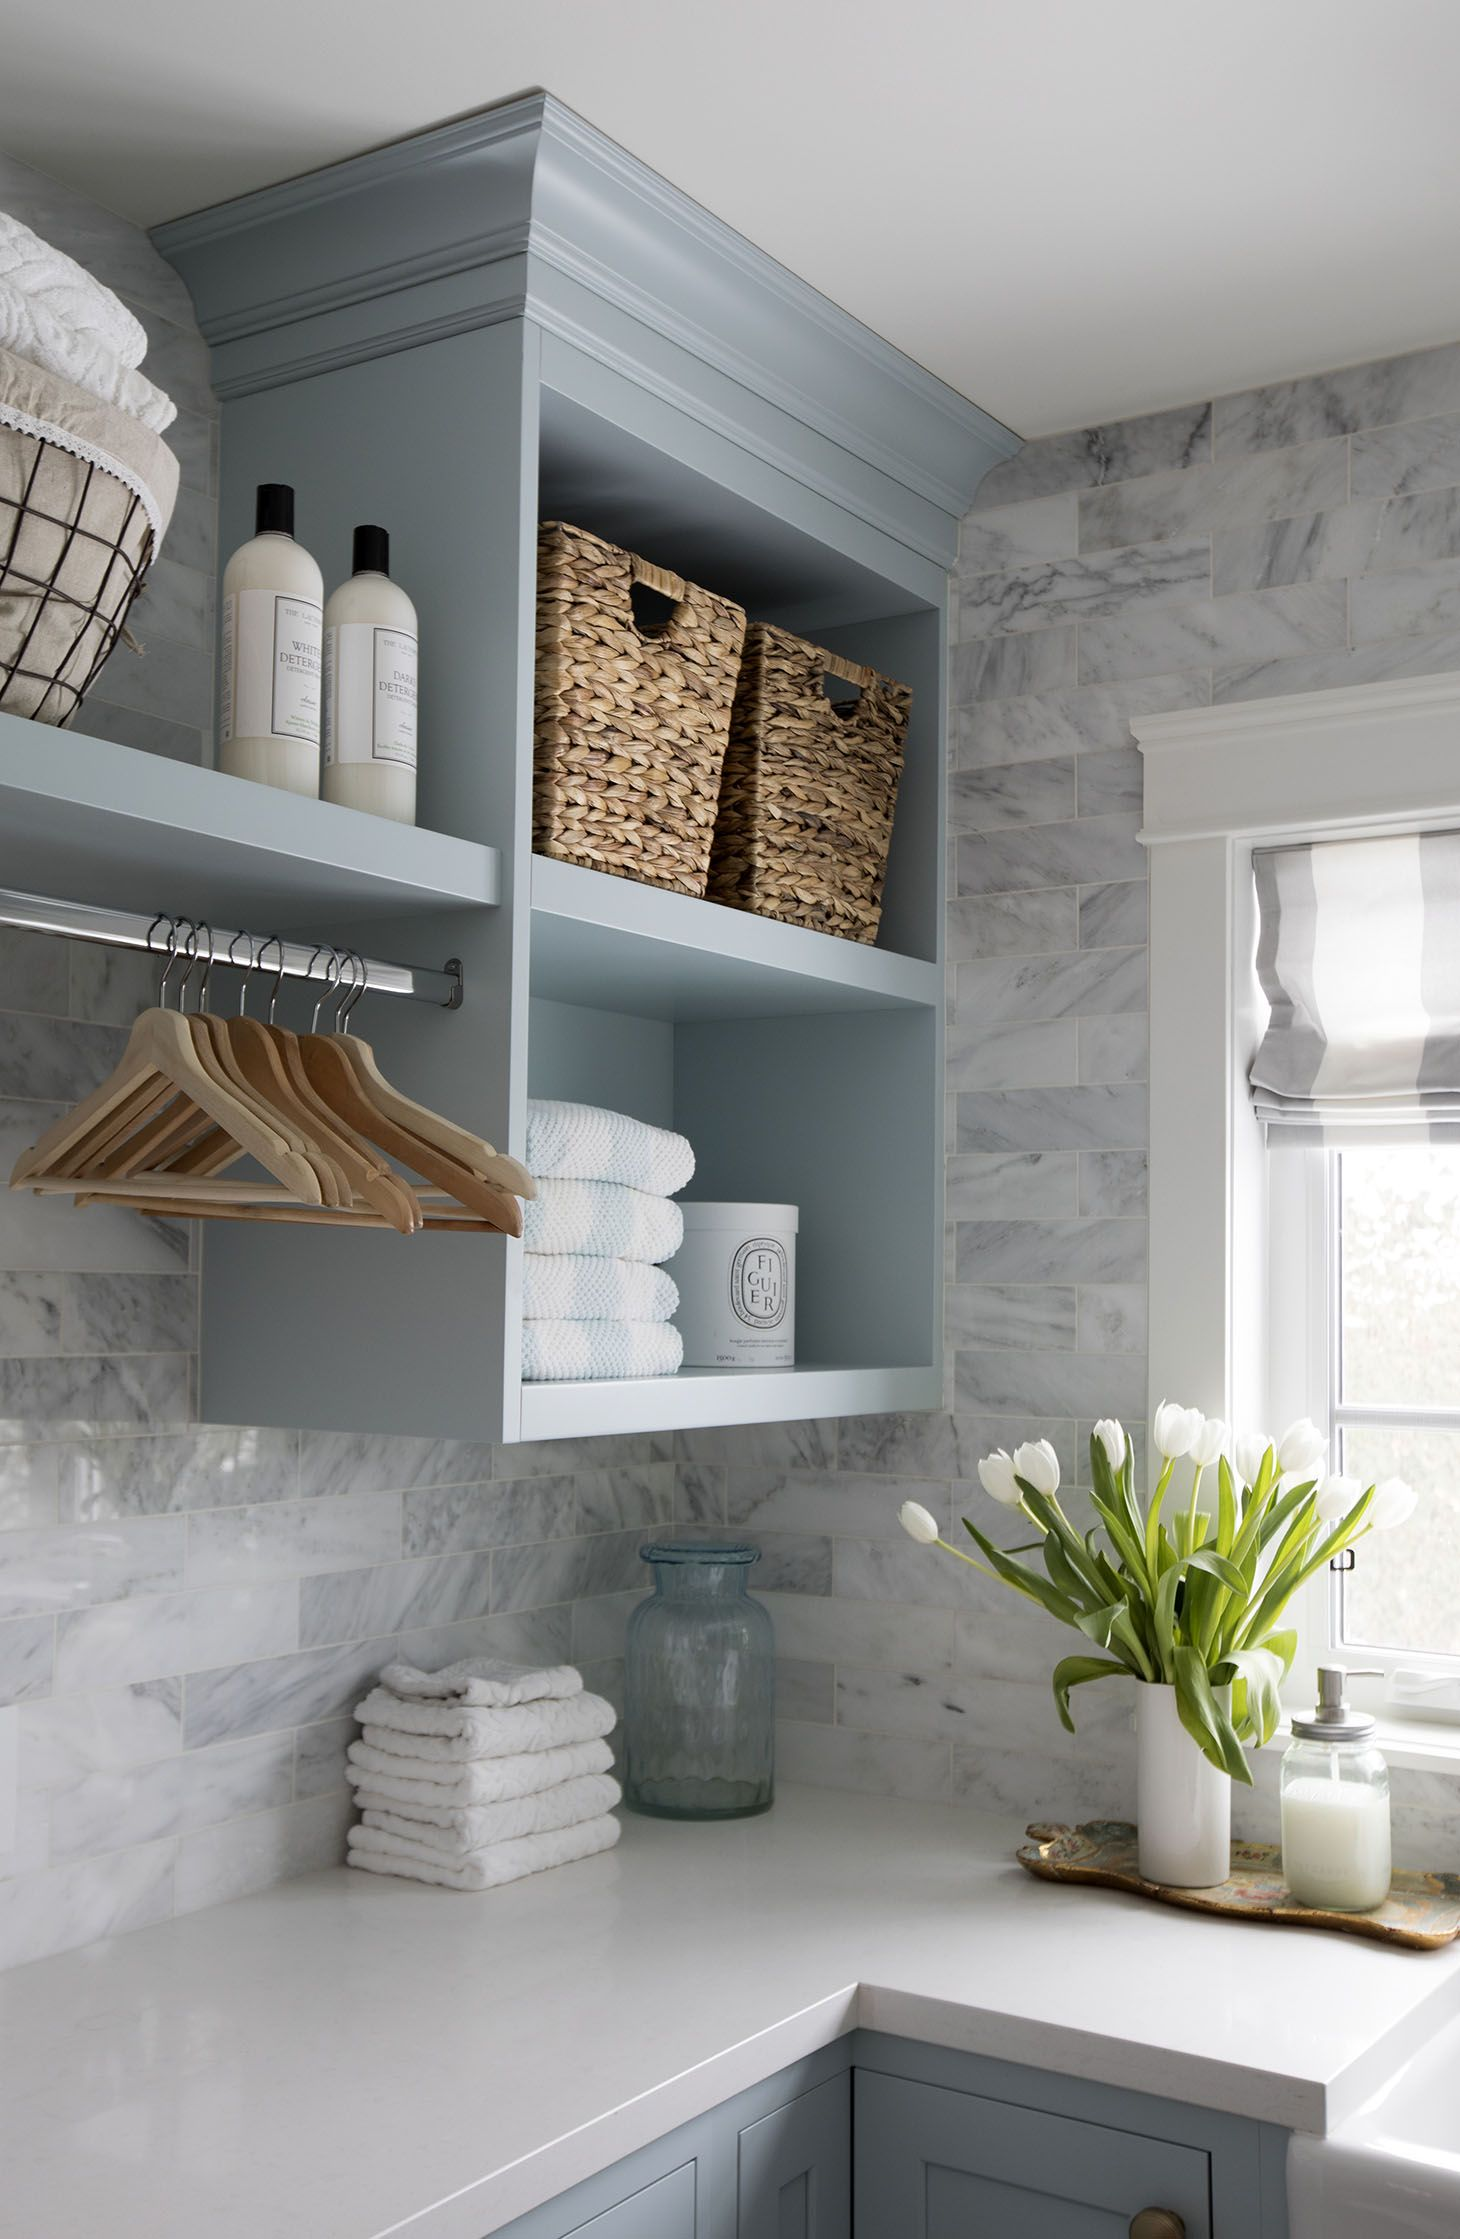 Home Tour Series: Laundry Room